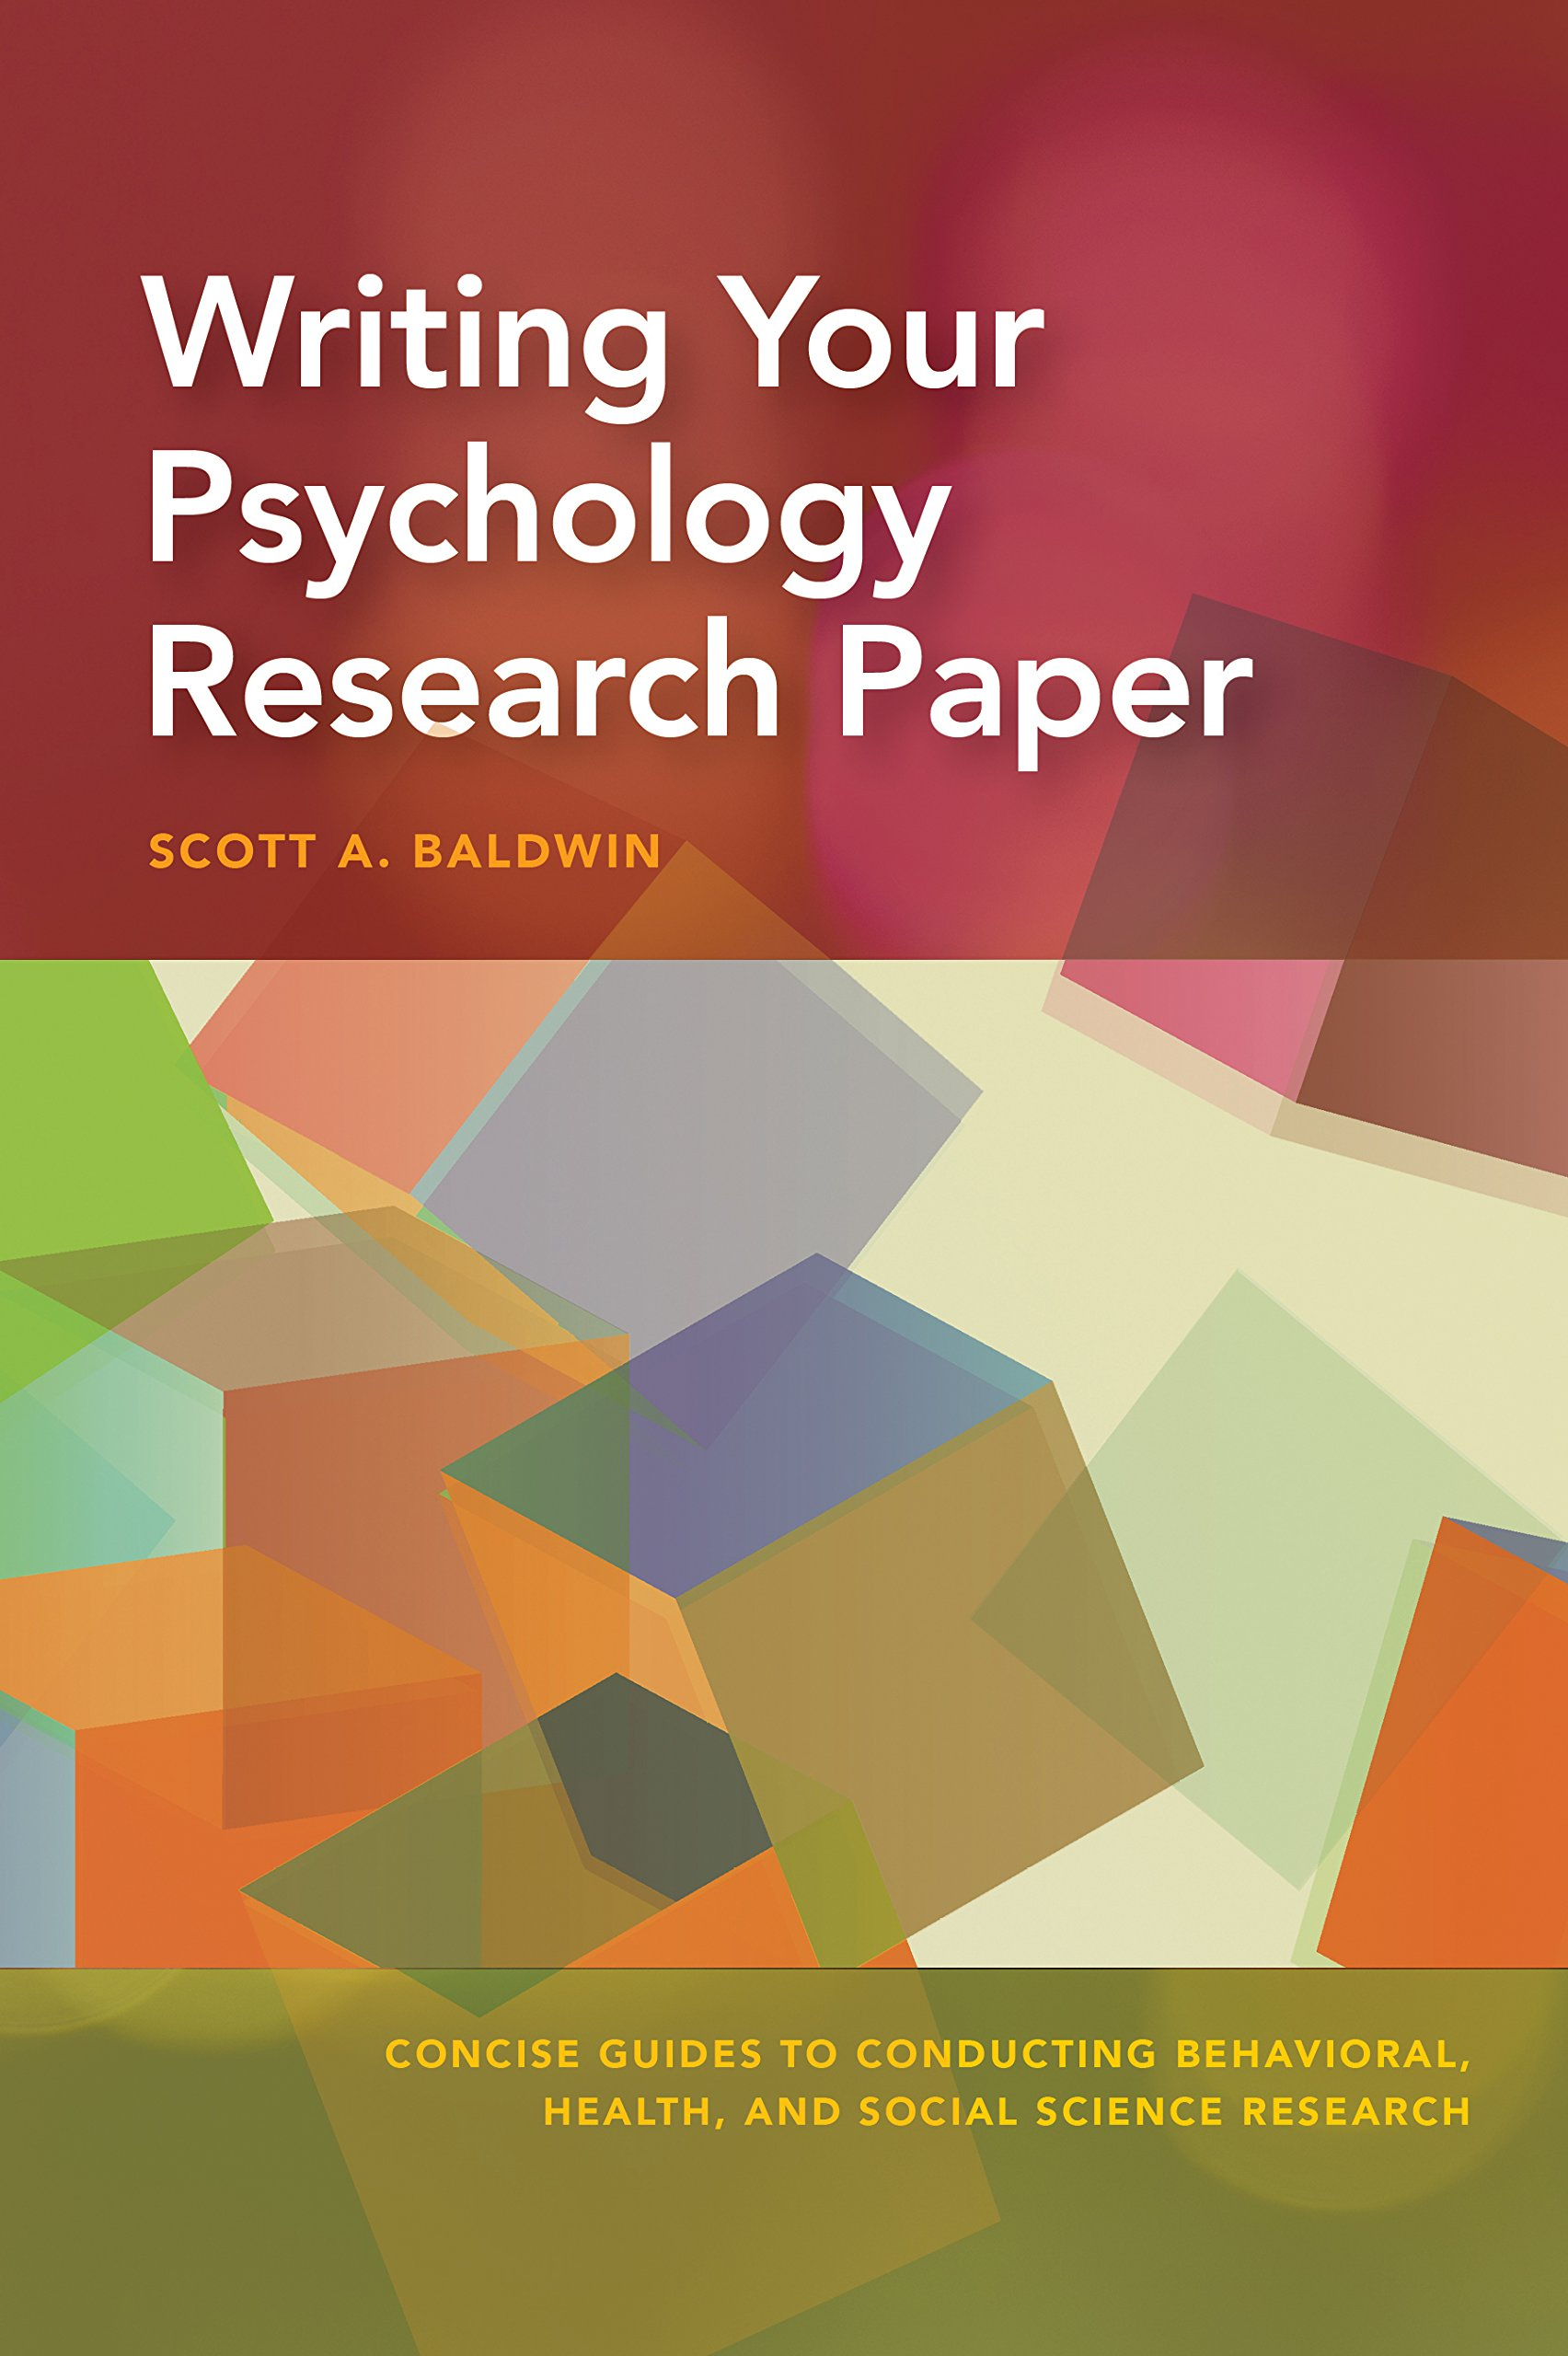 017 Research Paper Apa On Anxiety Breathtaking Full